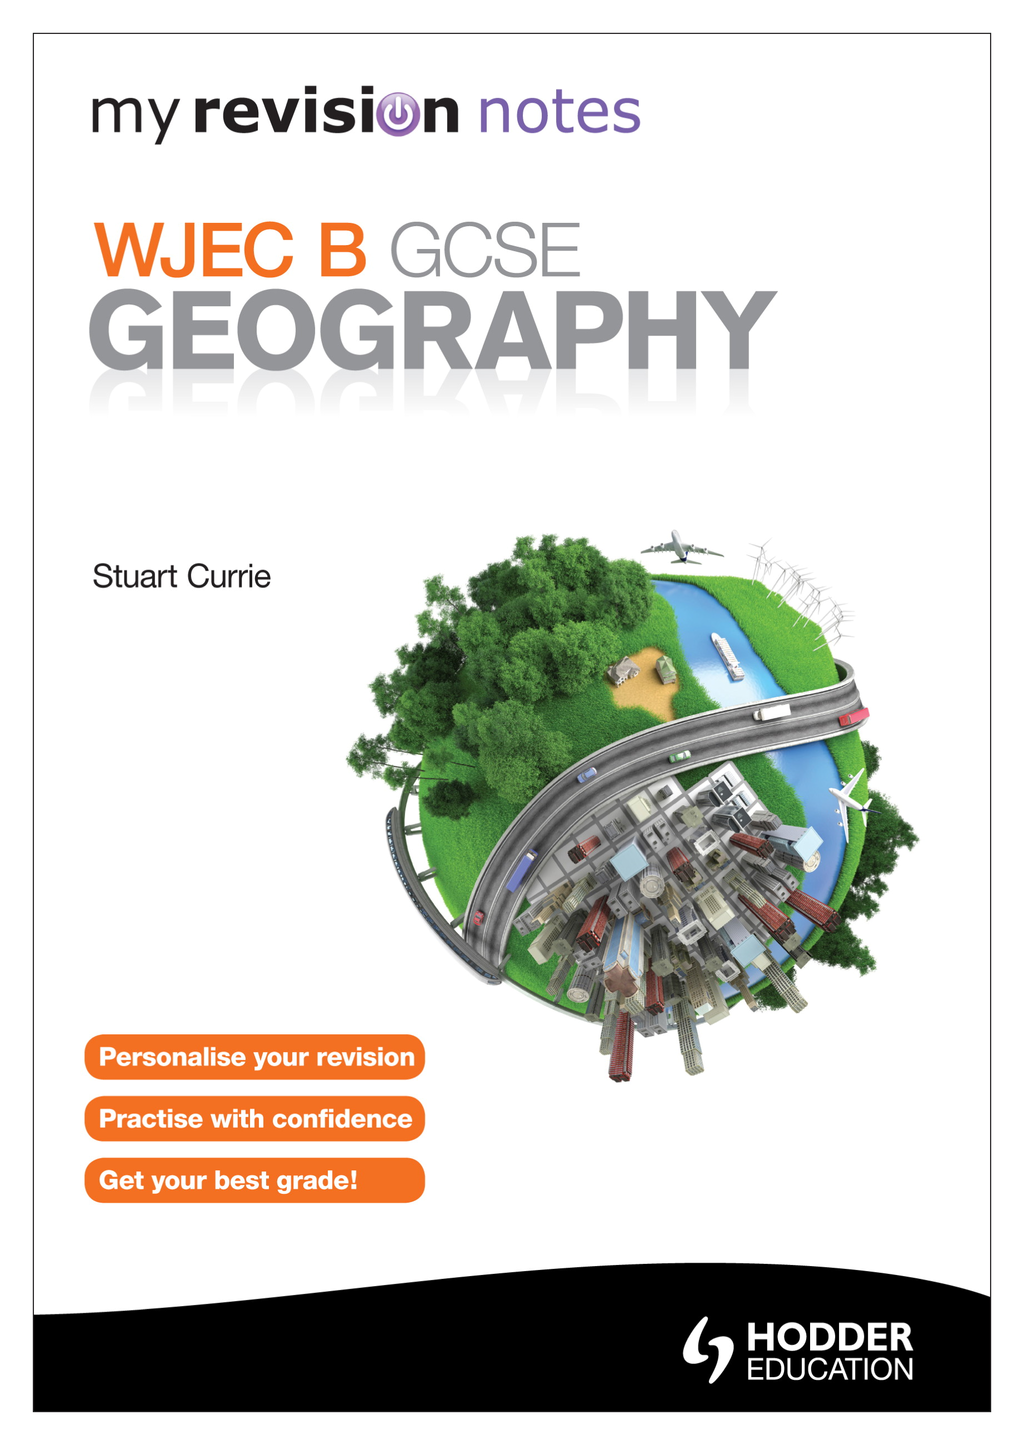 My Revision Notes: WJEC B GCSE Geography